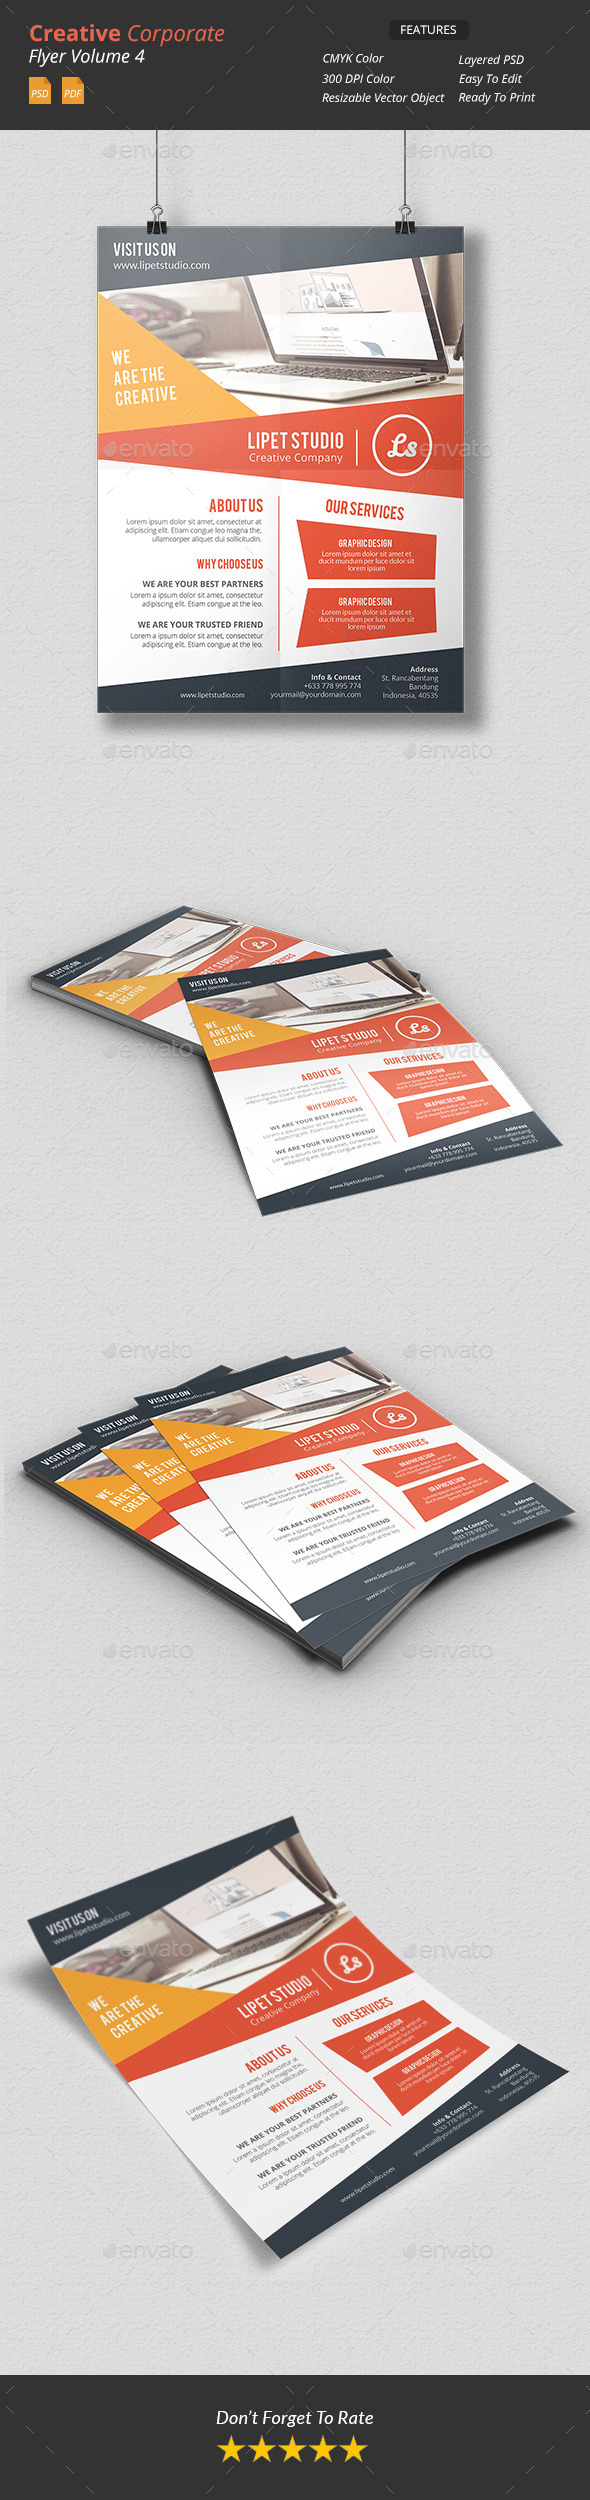 GraphicRiver Creative Corporate Flyer v4 9838608